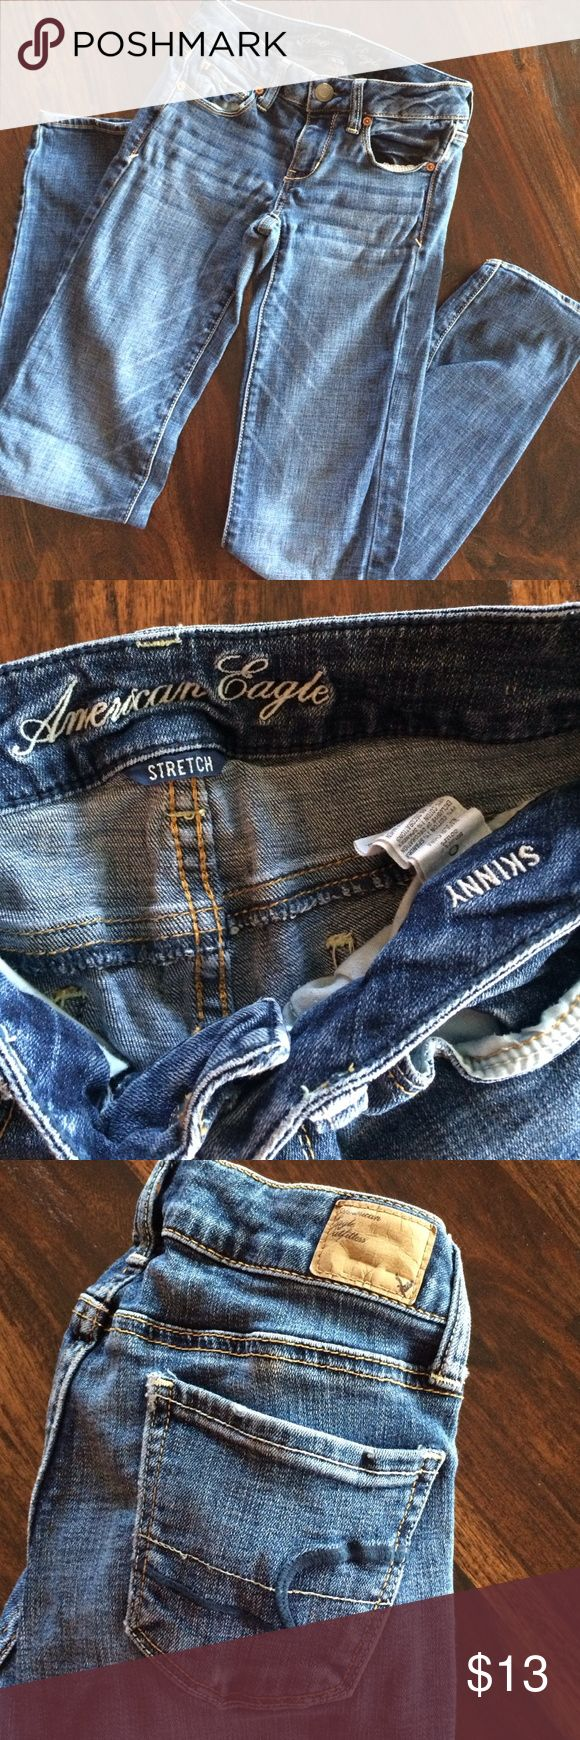 American Eagle Jeans American Eagles jeans - skinny size 0 short. EUC - always hung them to dry. American Eagle Outfitters Jeans Skinny